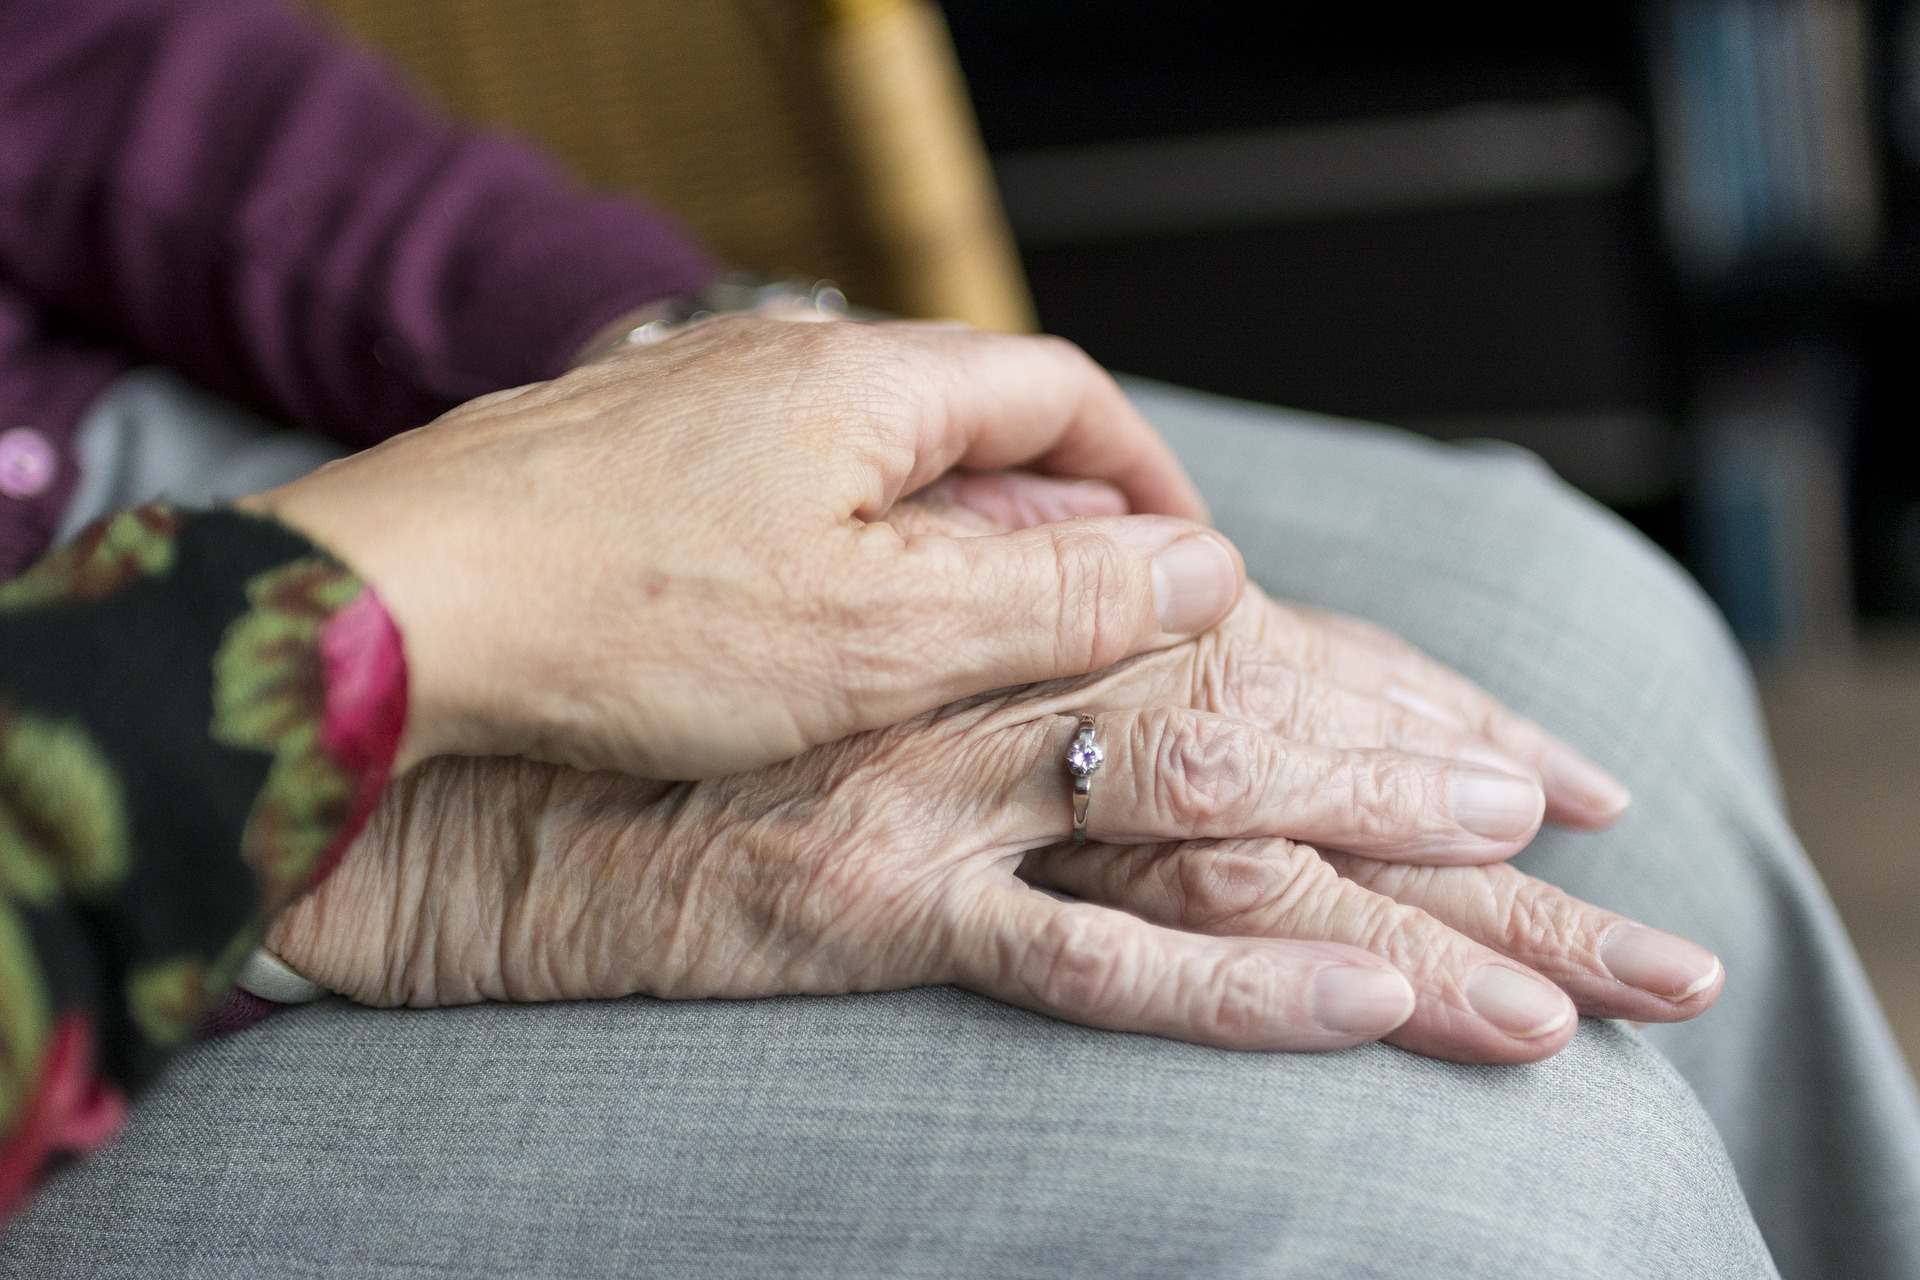 Protecting the elderly from Nursing Home Abuse